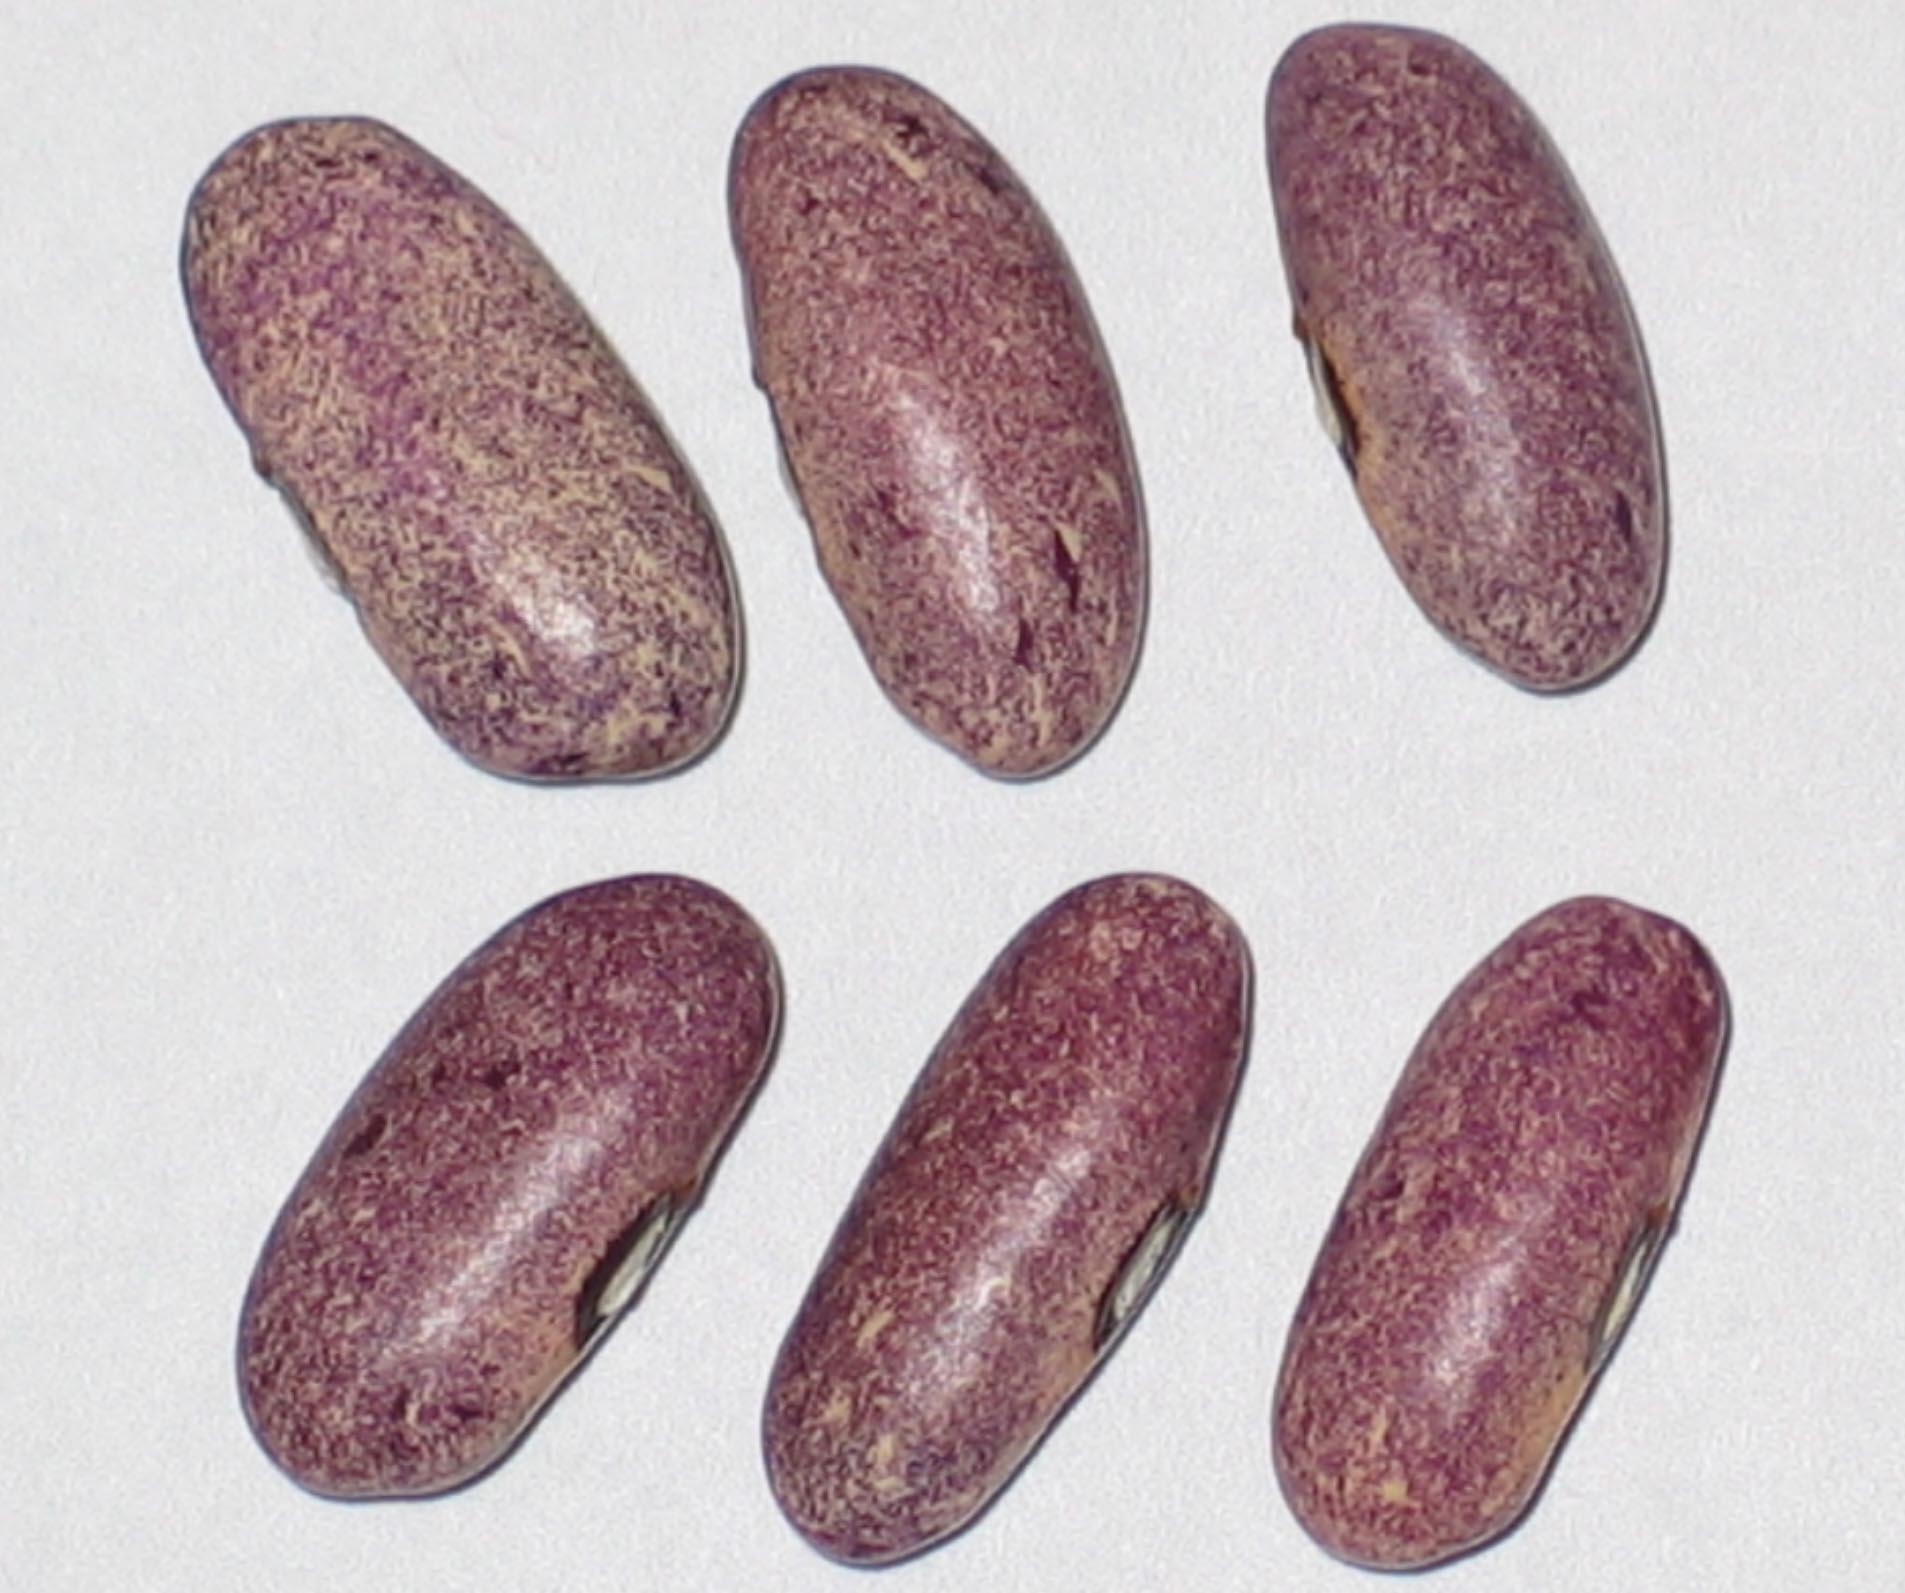 image of Mrociumere beans